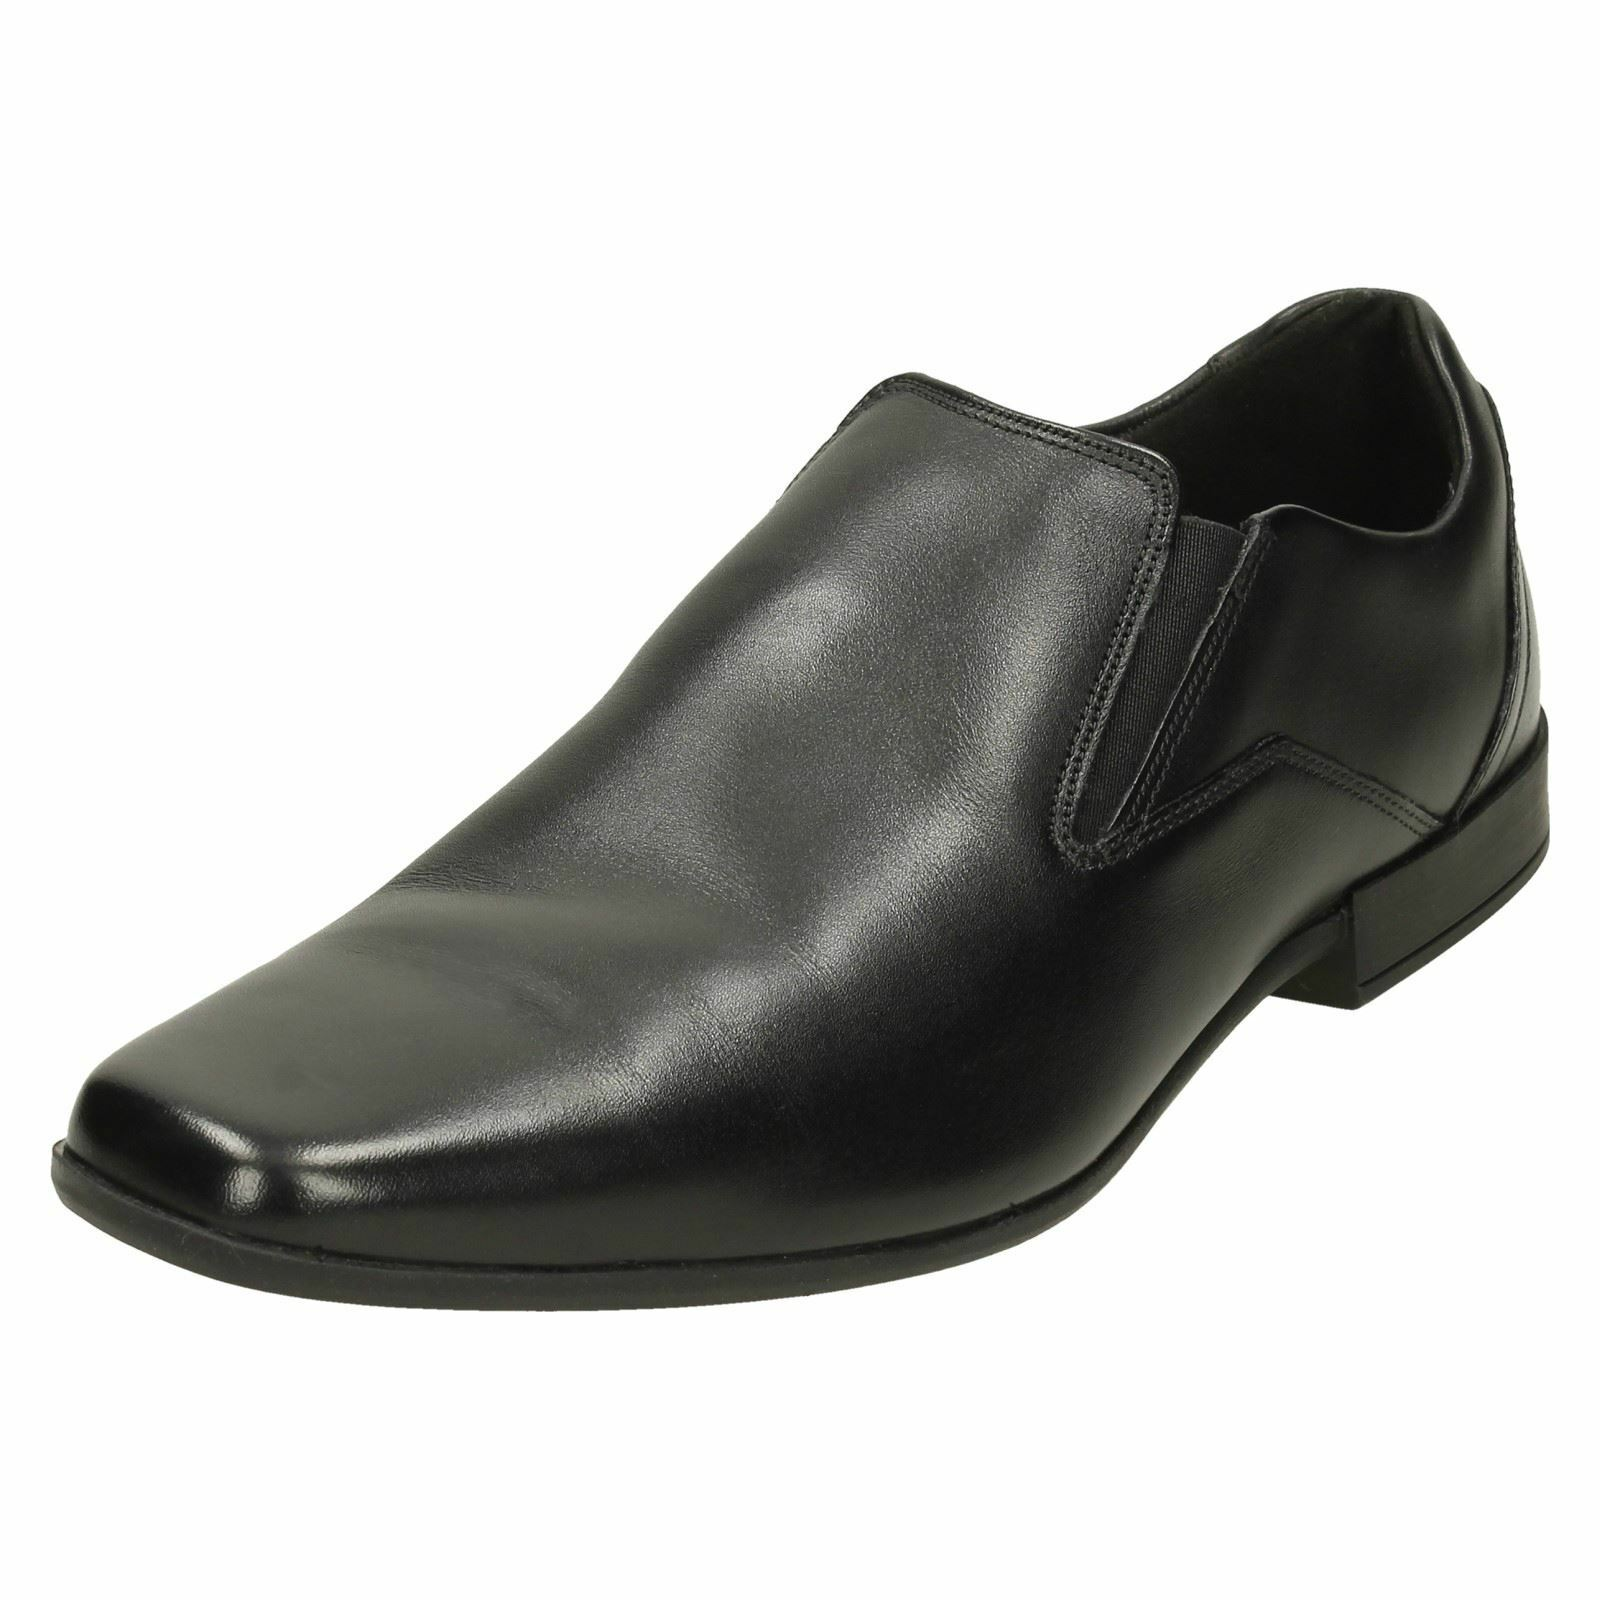 Mens Clarks Formal shoes Glement Slip